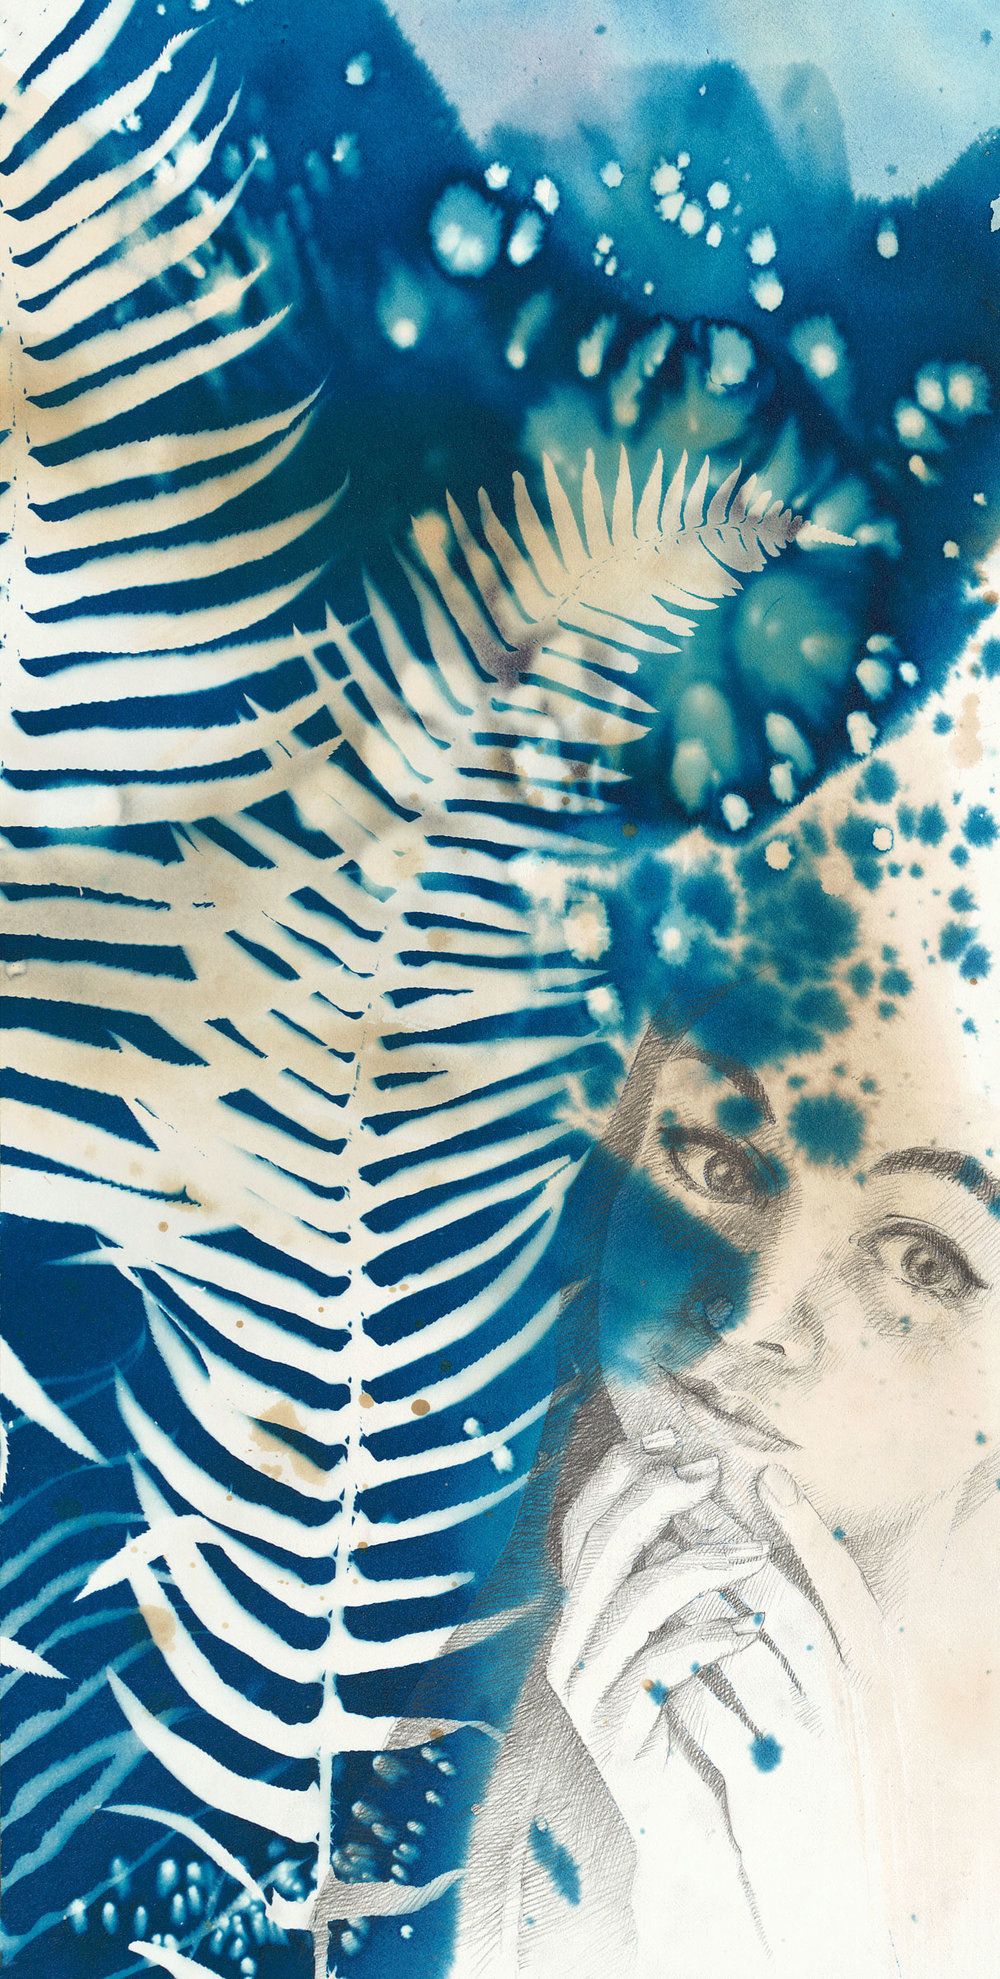 Wondering  | 10 x 20 | cyanotype, tea stain, watercolor, pencil | SOLD